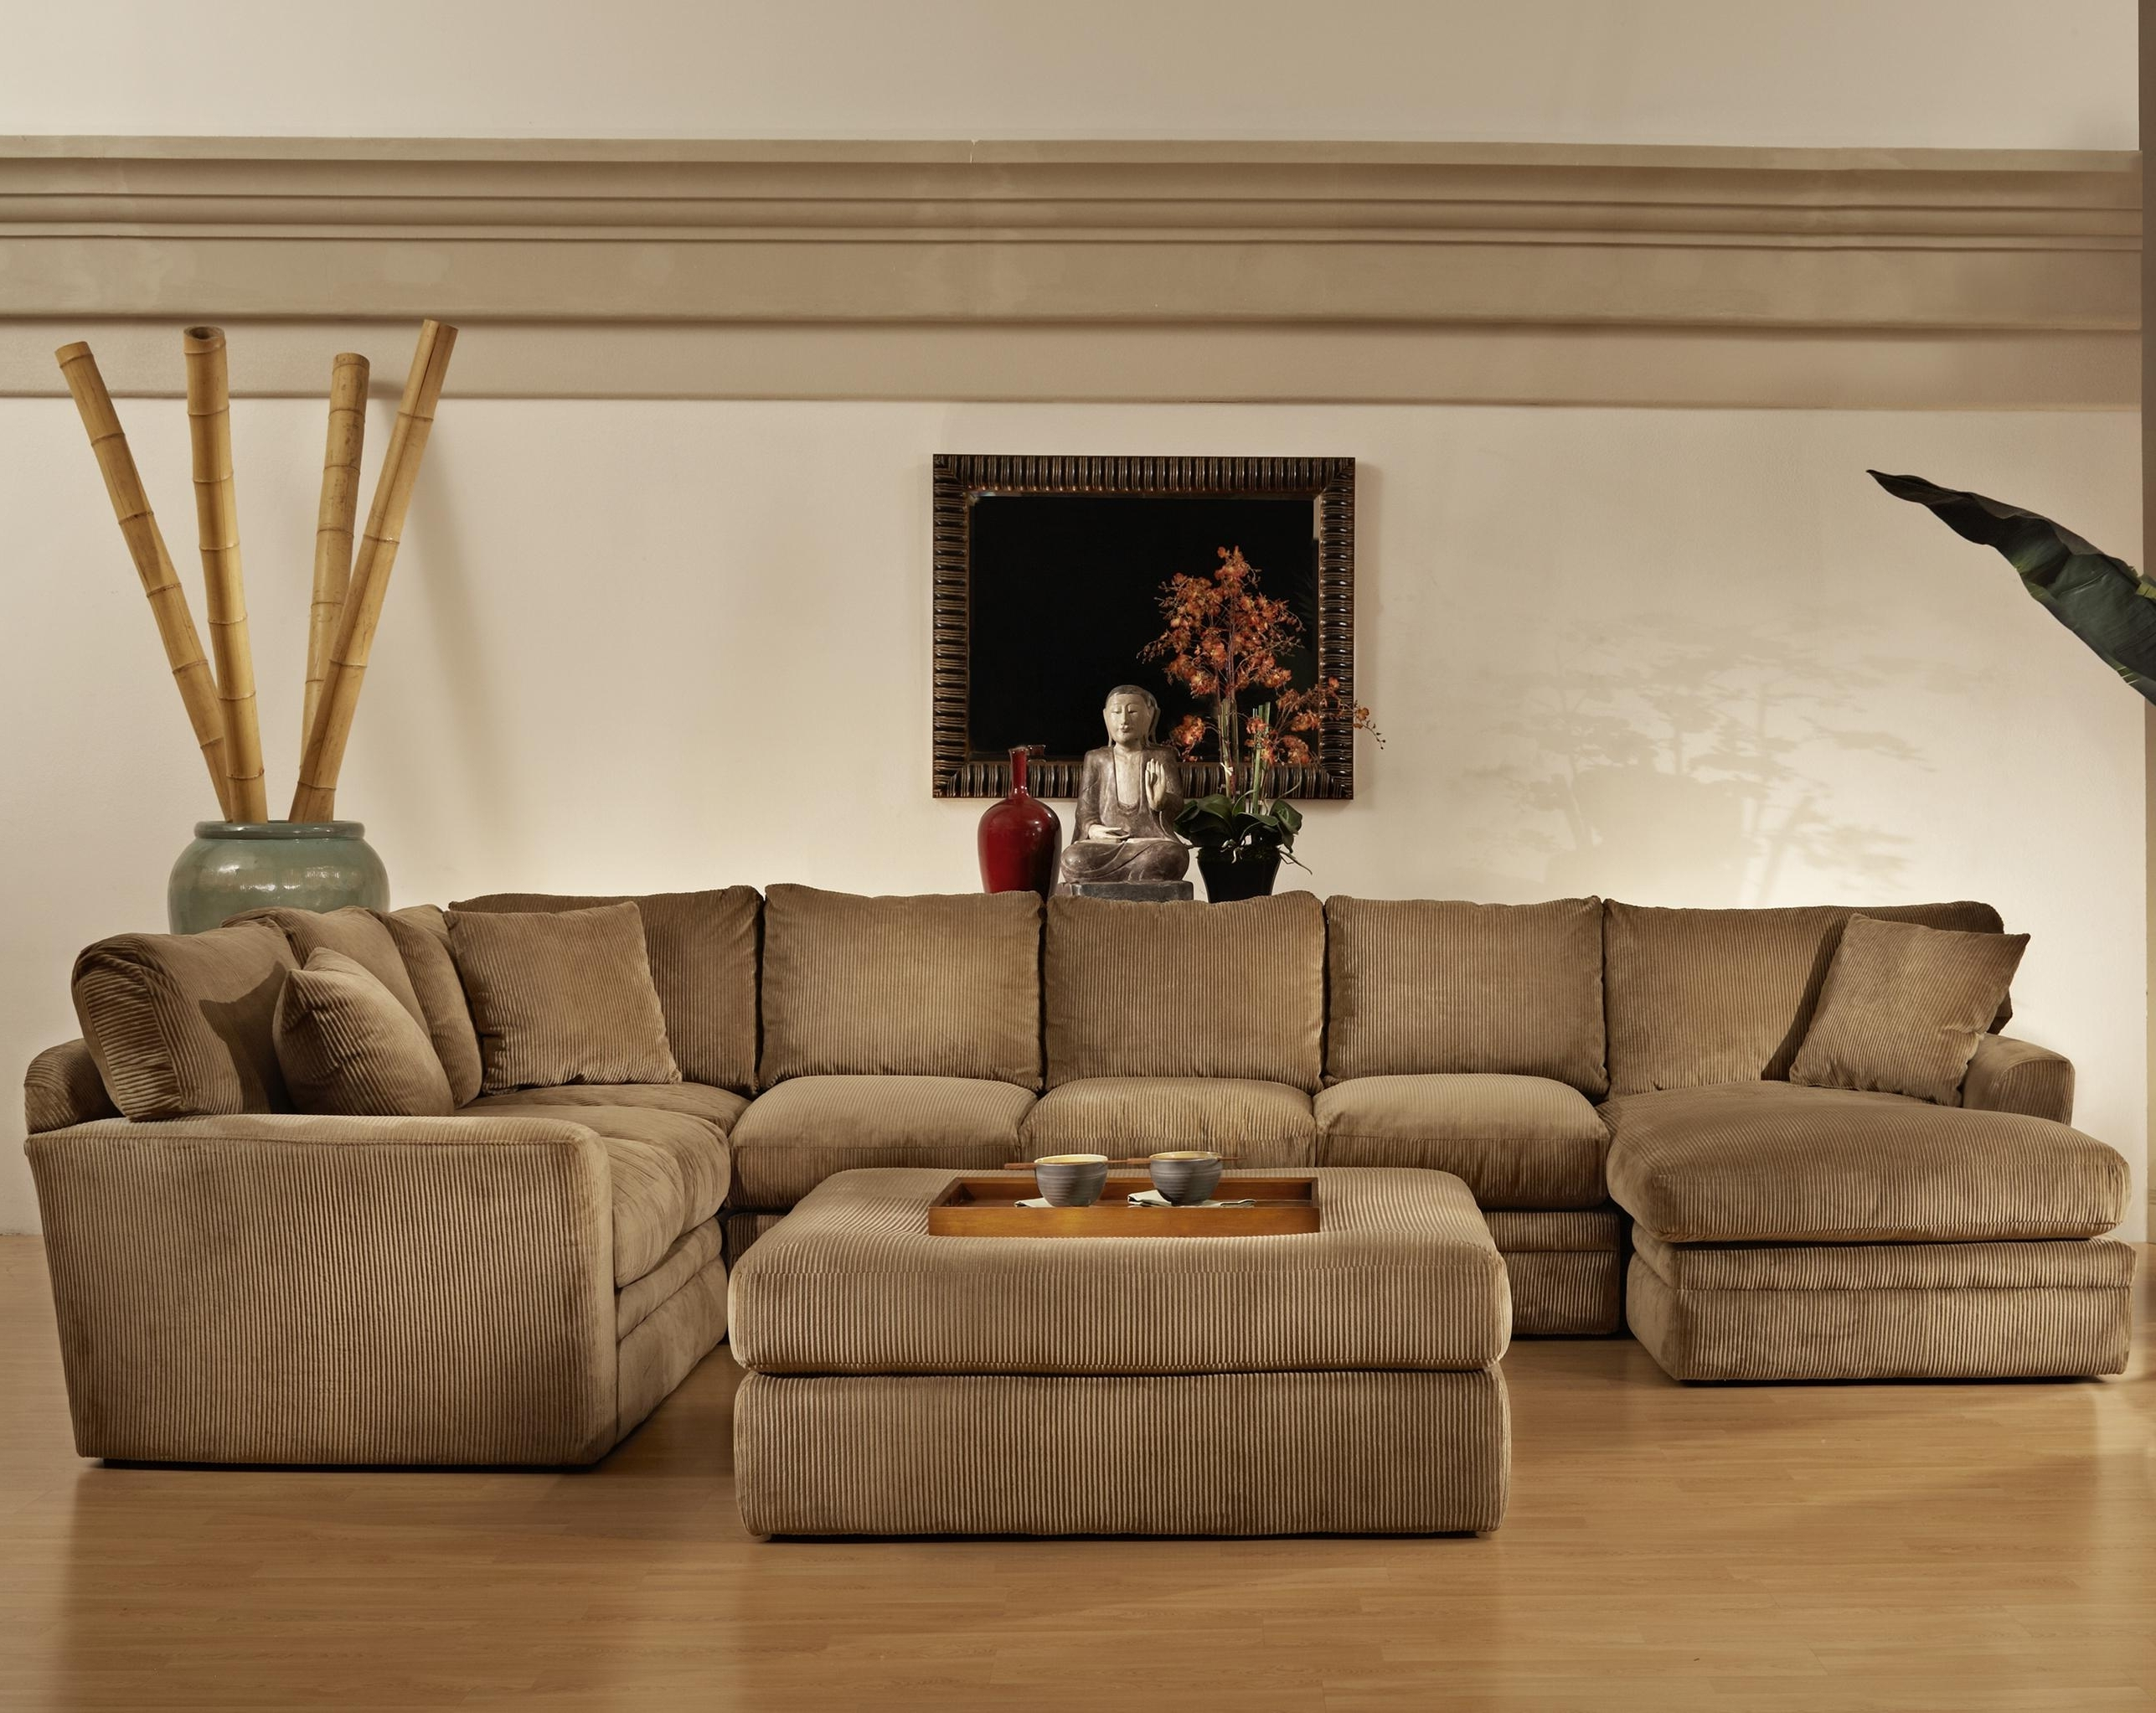 Comfy Sectional Sofas Intended For Recent Living Room Design: Comfy Sofa Sectionals For Home Interior Design (View 5 of 20)